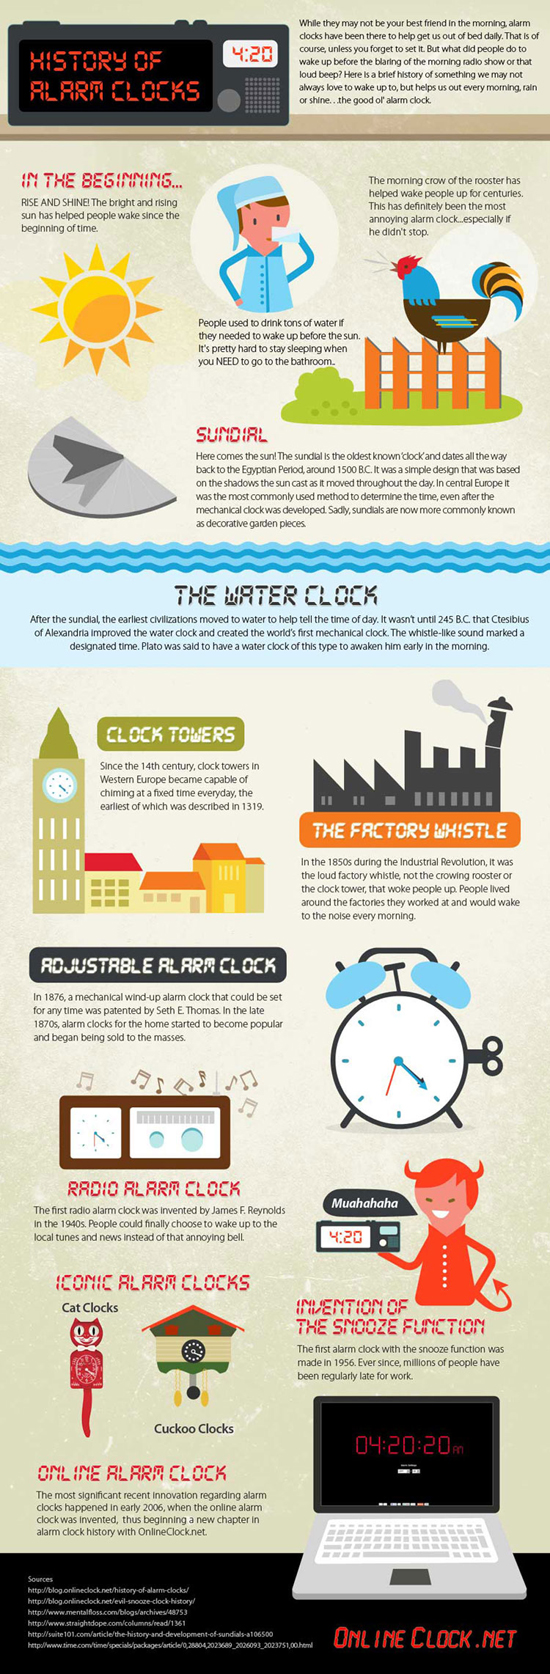 Infographic on the History of Alarm Clocks